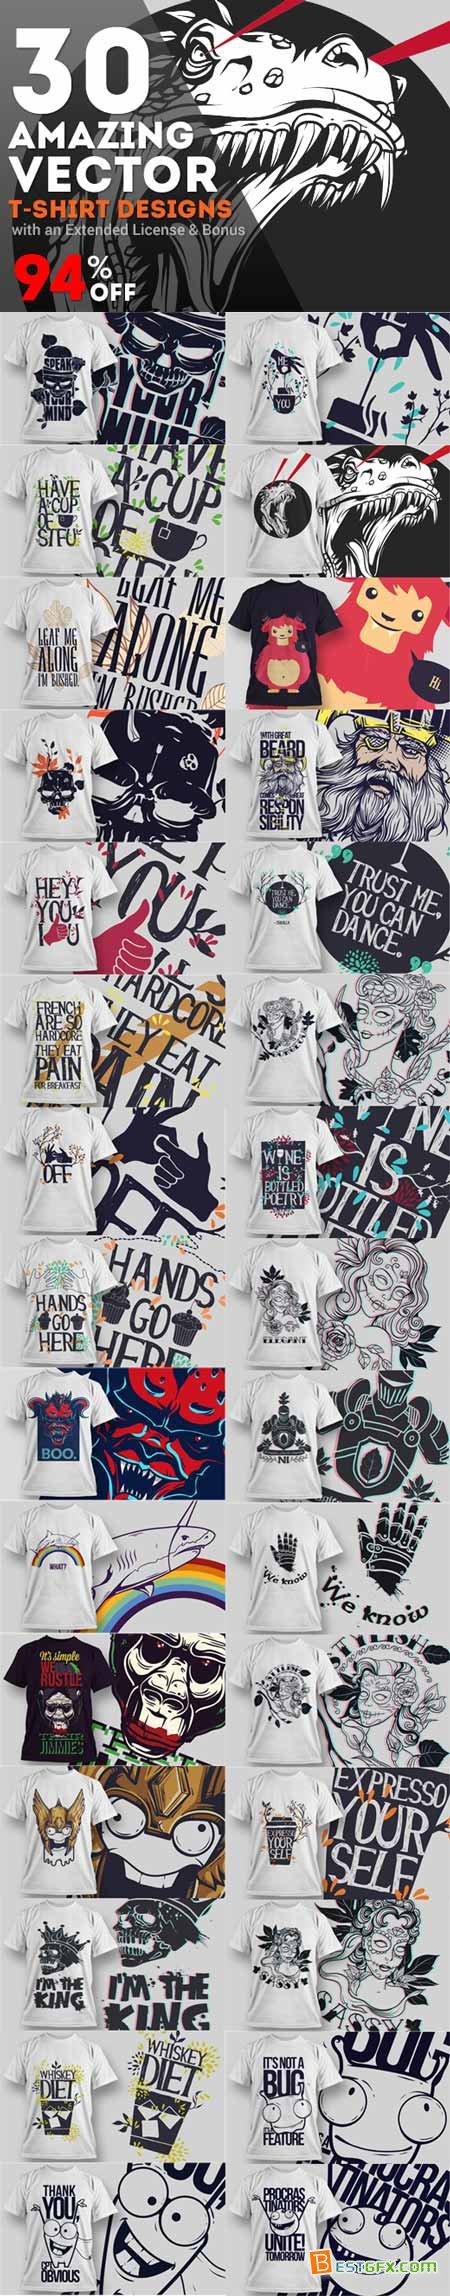 graphicriver_30_amazing_vector_t_shirt_designs_with_an_extended_license_and_bonus_cap